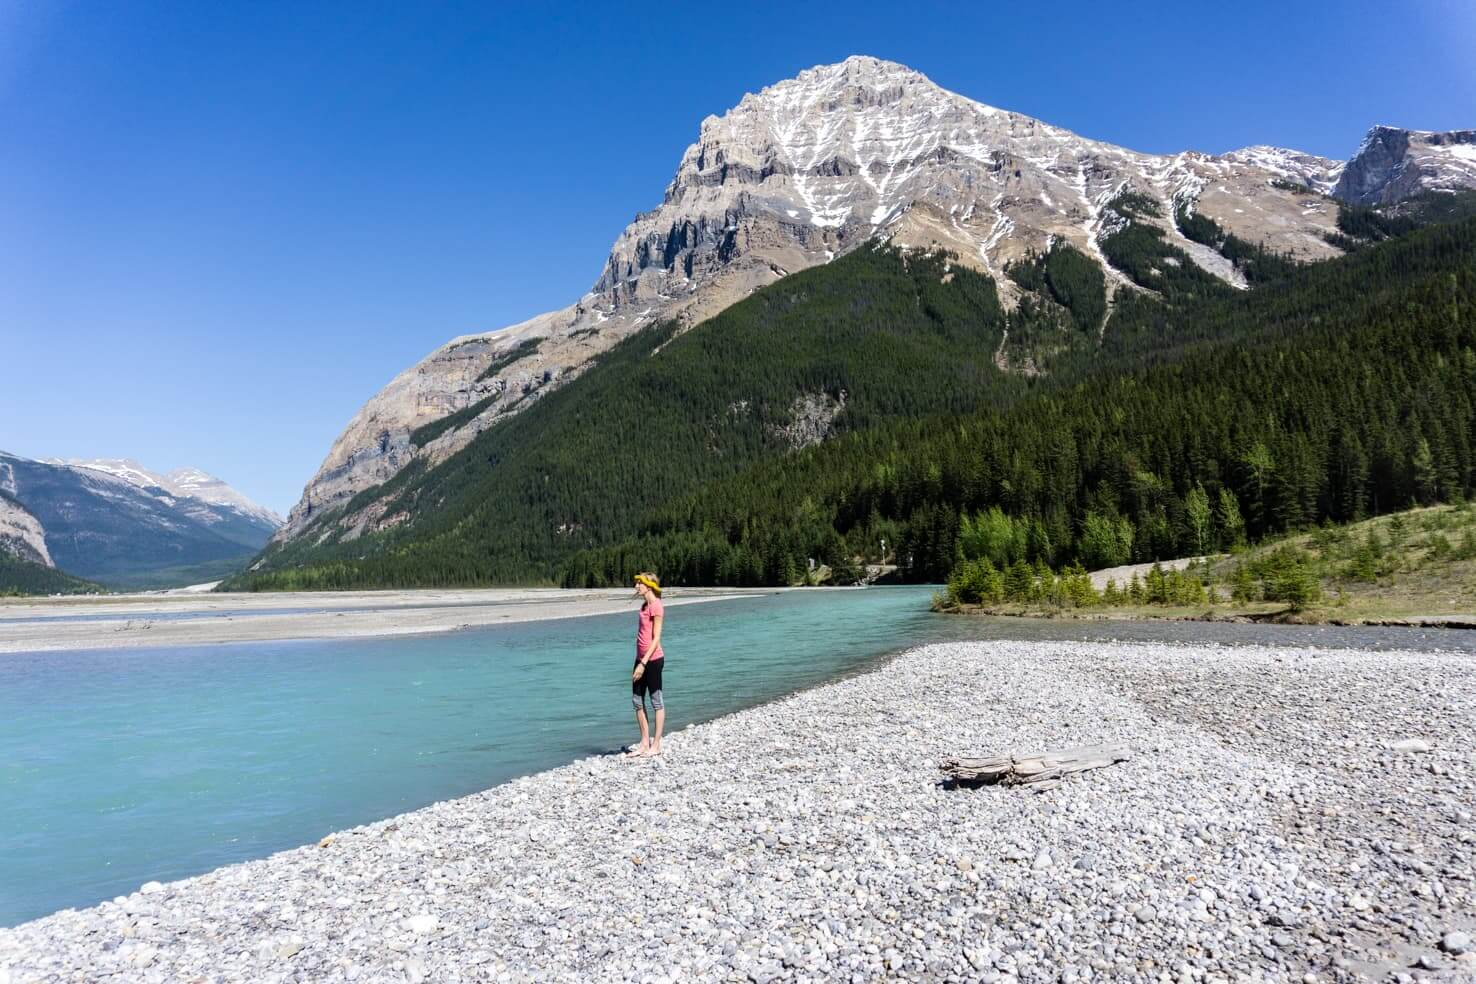 Adventure travel guide to Yoho National Park - walking along the river in Field